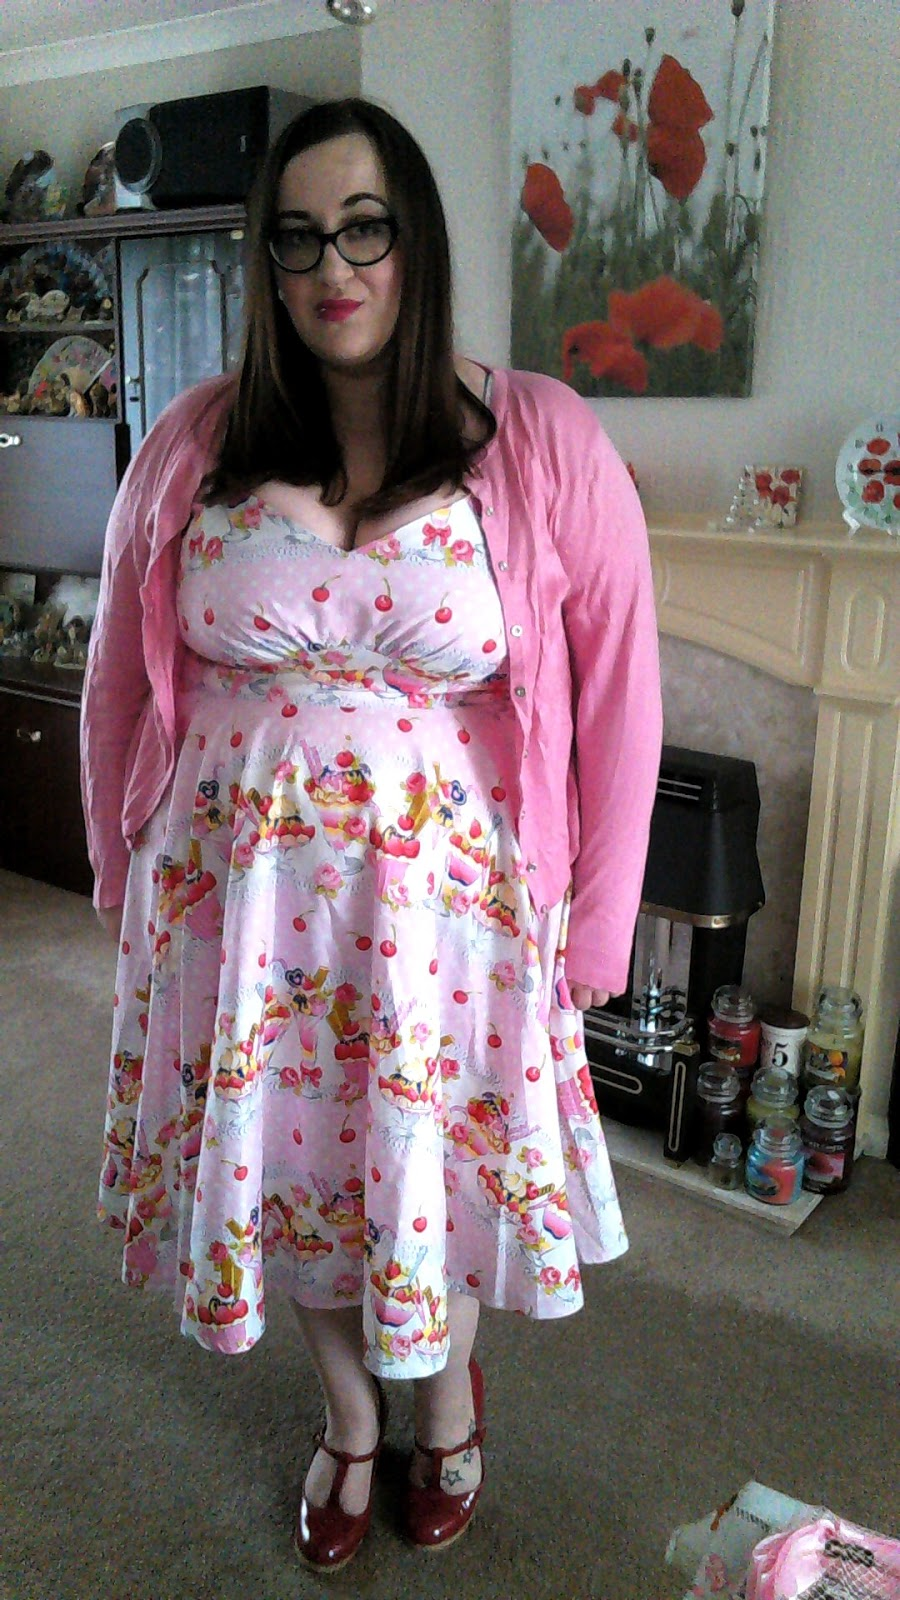 fat plus size girl bbw (size 20/22) wearing a polka dot polly sundae dress